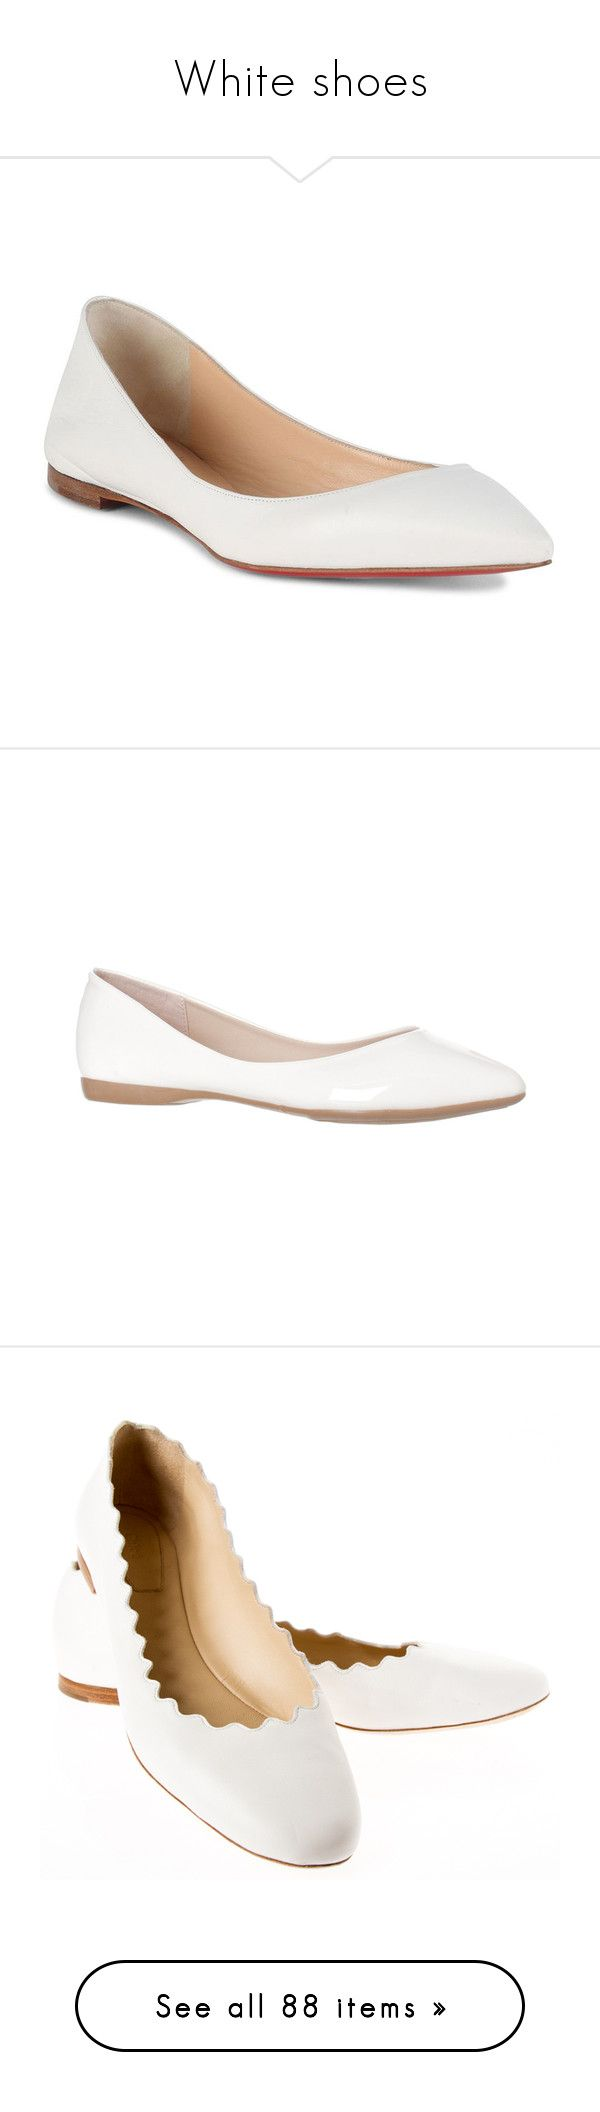 """White shoes"" by domino-80 ❤ liked on Polyvore featuring shoes, flats, wide width flats, black leather flats, black pointy toe flats, leather flats, black shoes, pointy toe ballet flats, red ballet flats and white ballet flats"